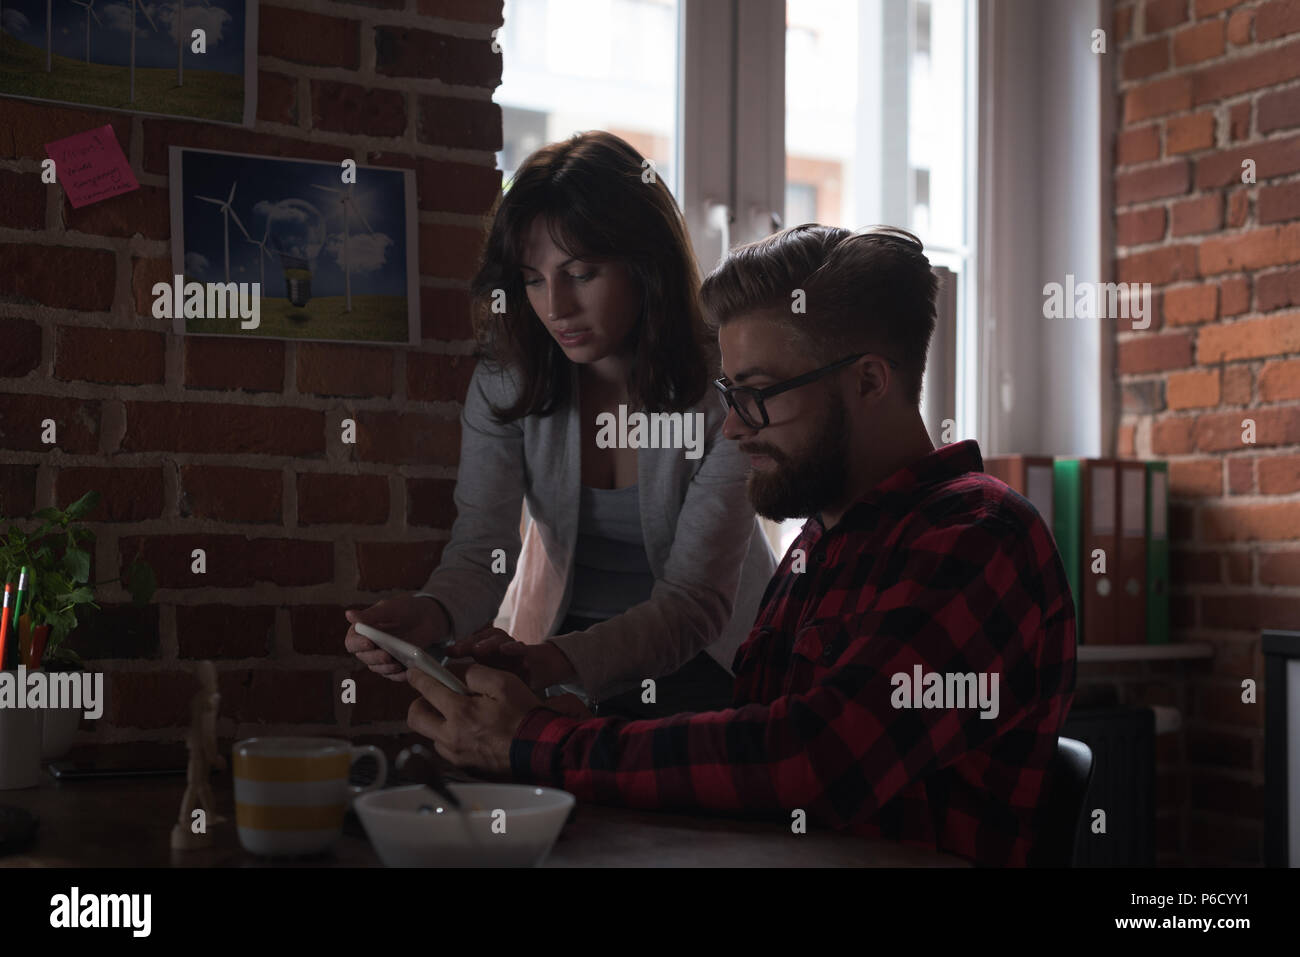 Male and female executives discussing over digital tablet - Stock Image